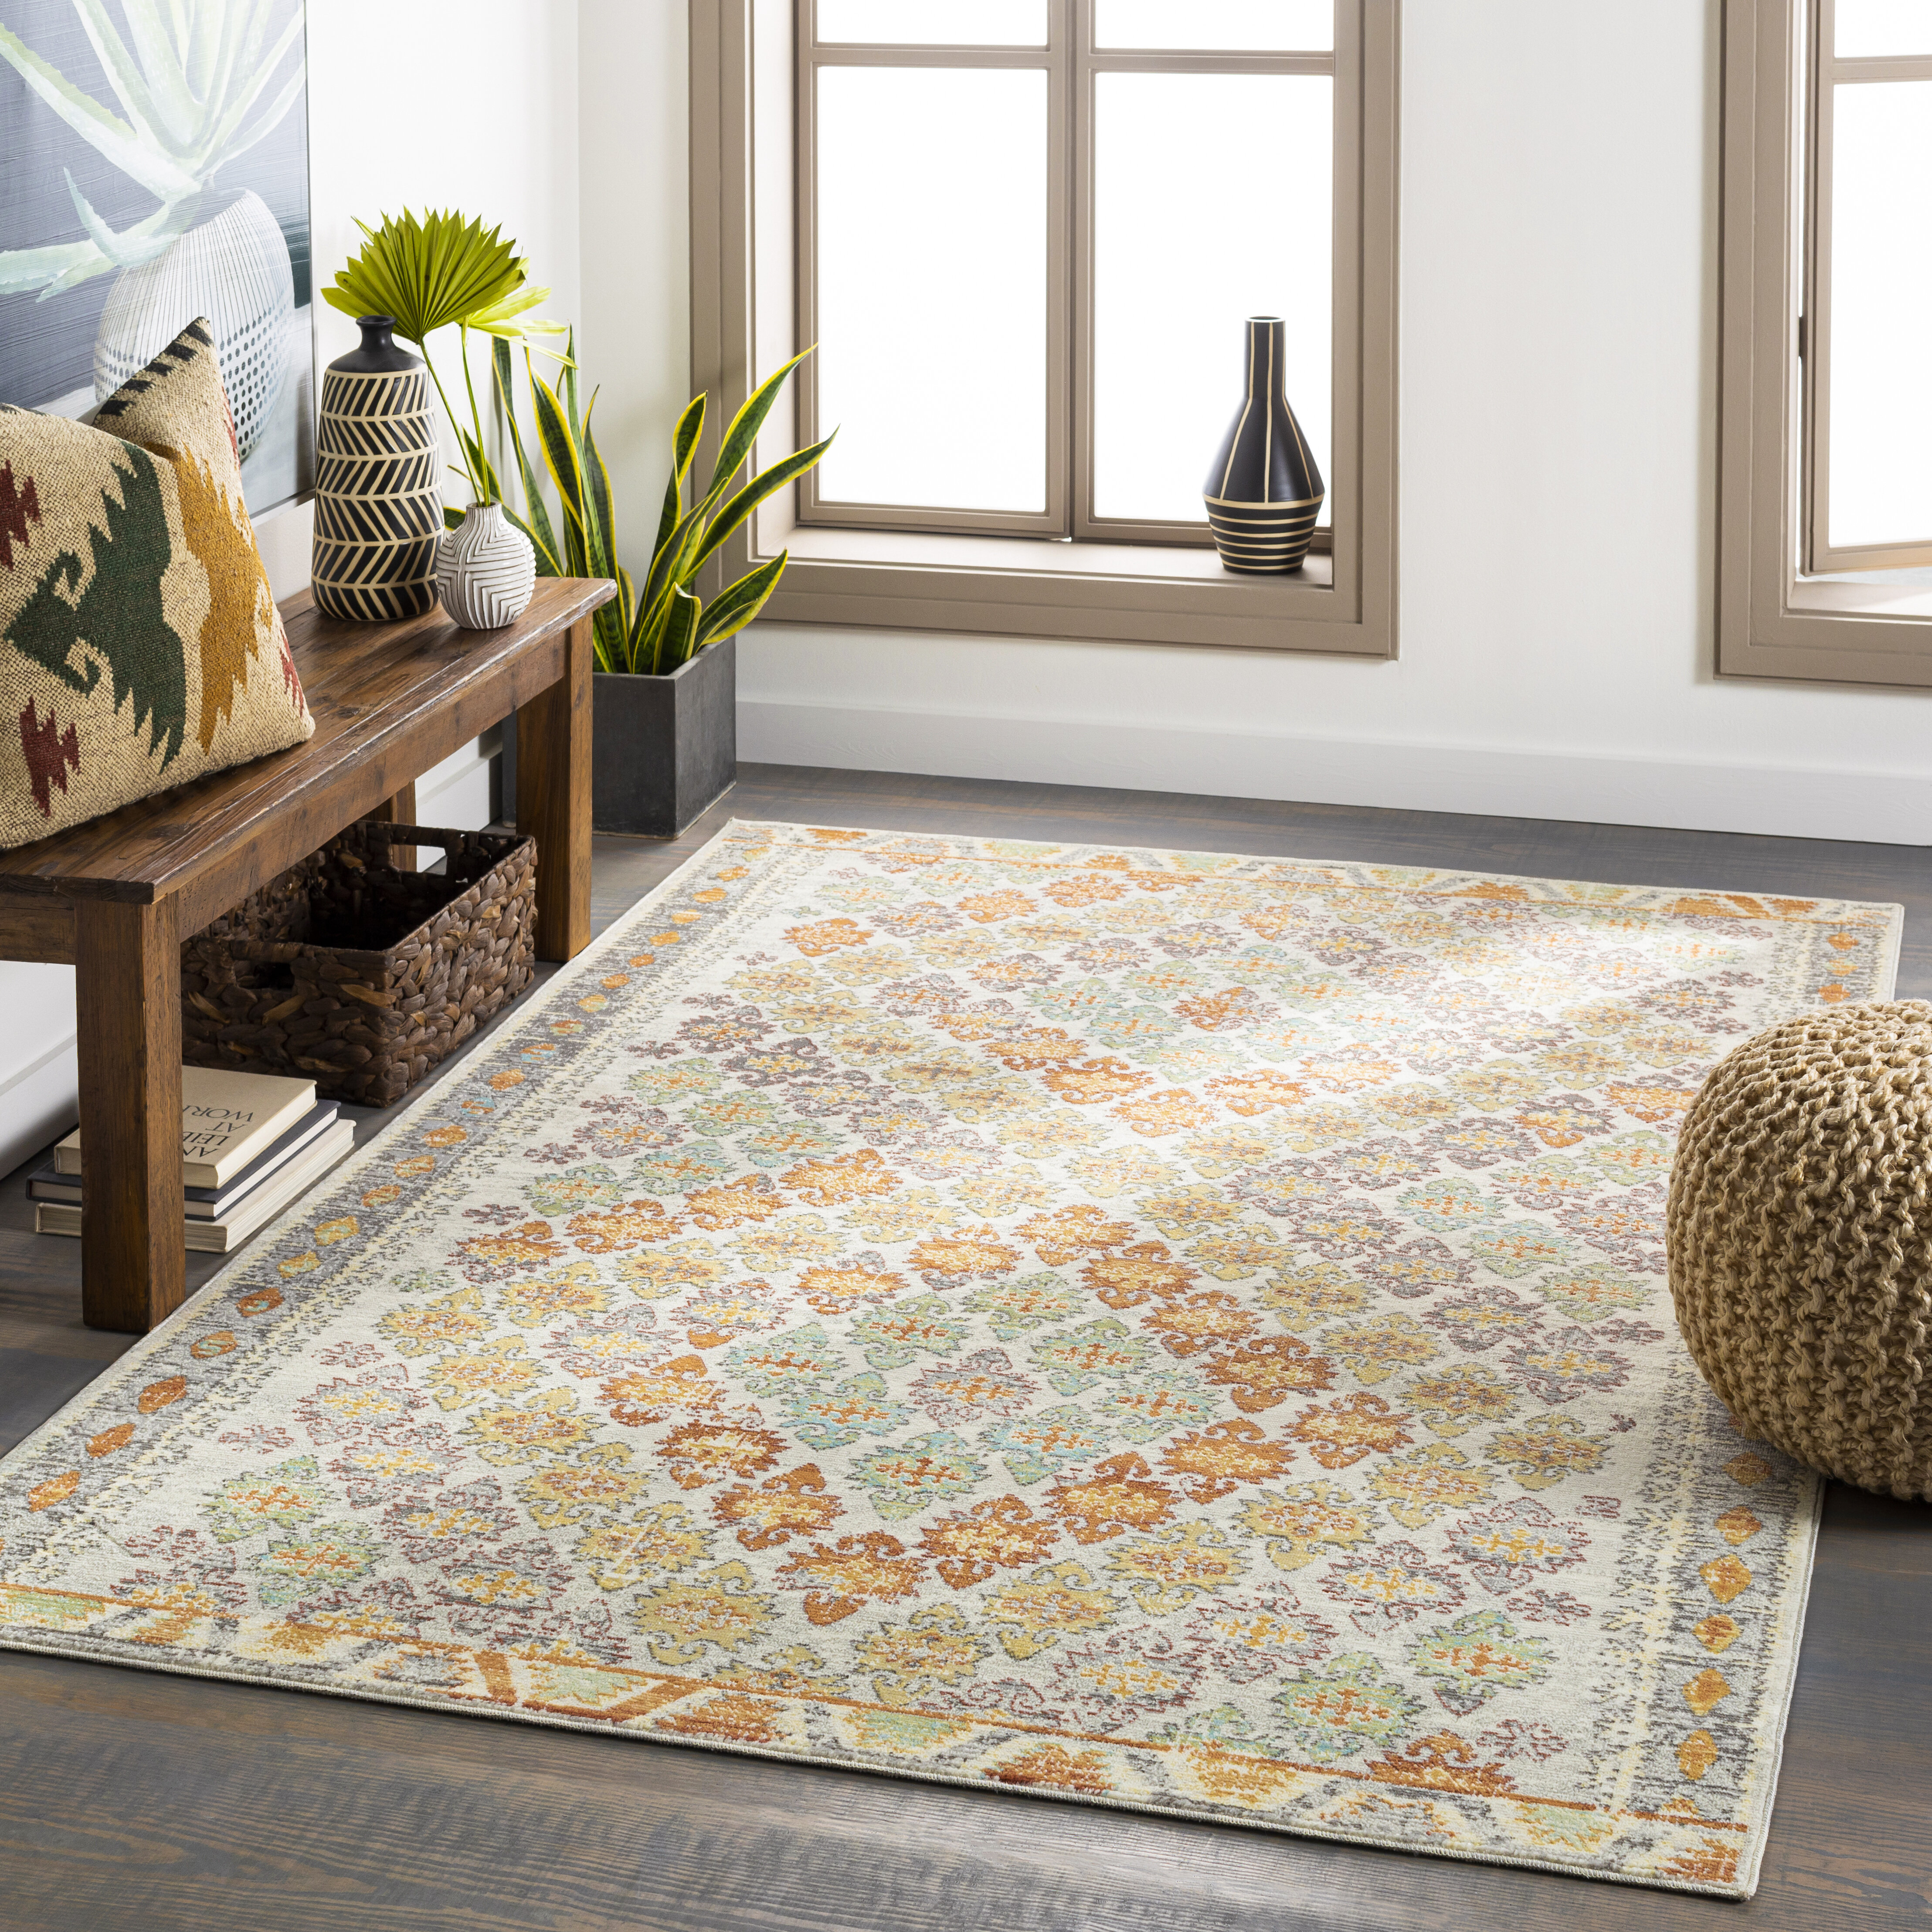 Ivory Cream World Menagerie 9 X 12 Rugs You Ll Love In 2021 Wayfair